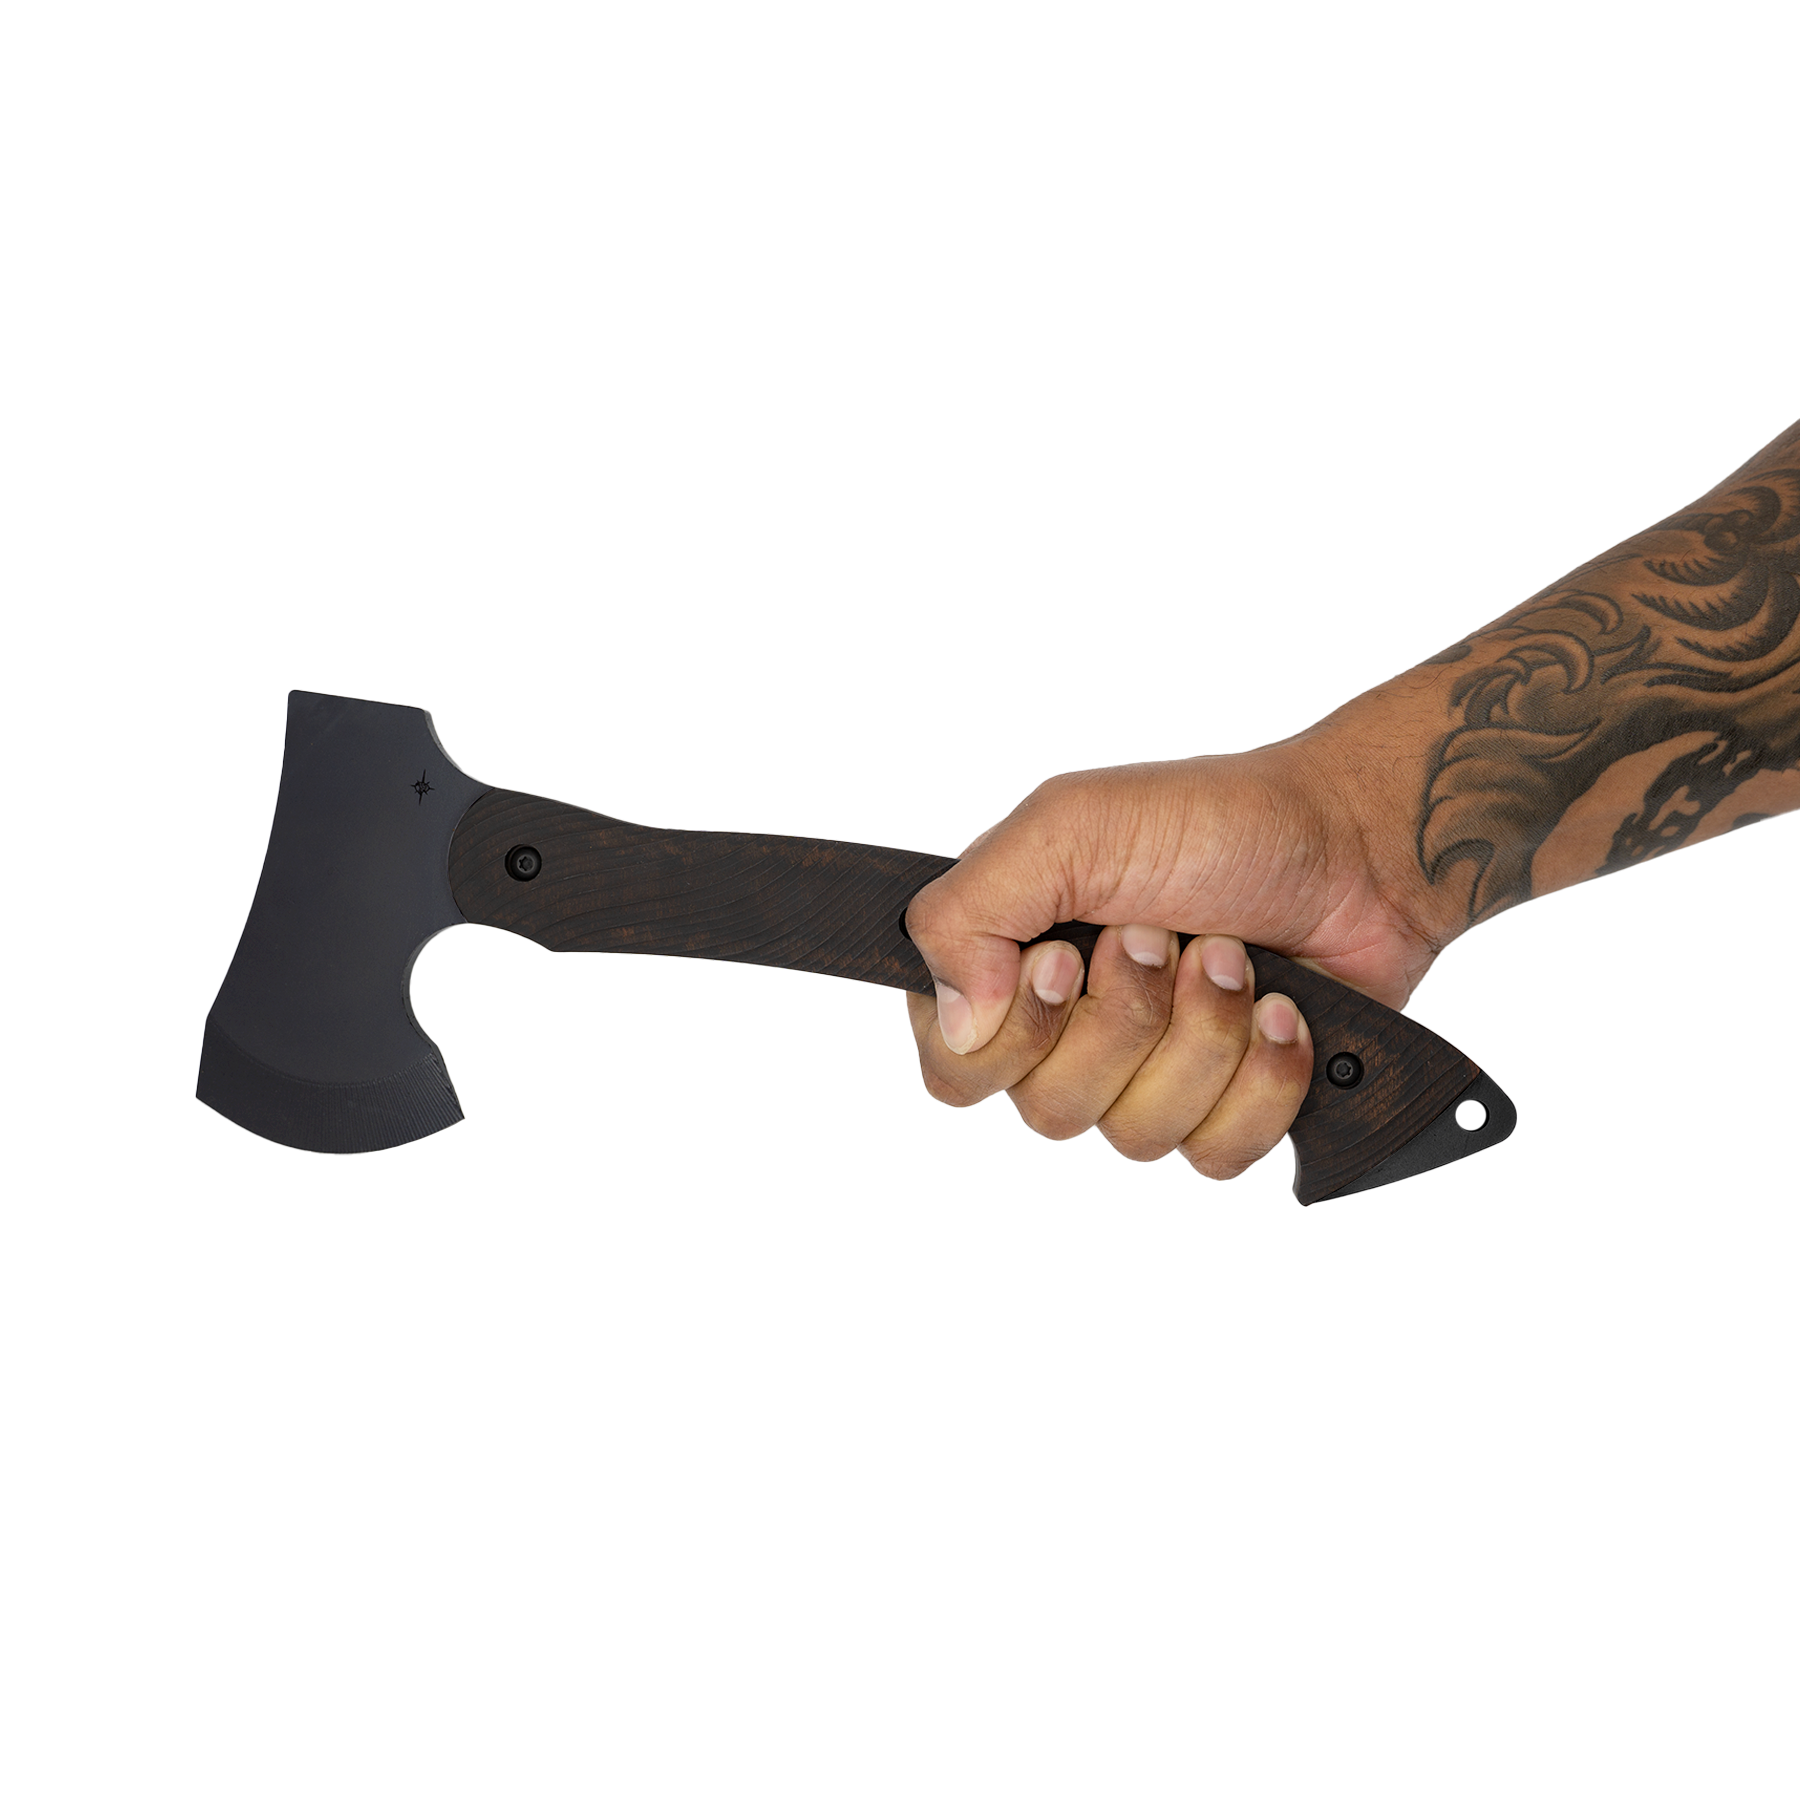 Toor Knives Camp Axe - Shadow Black